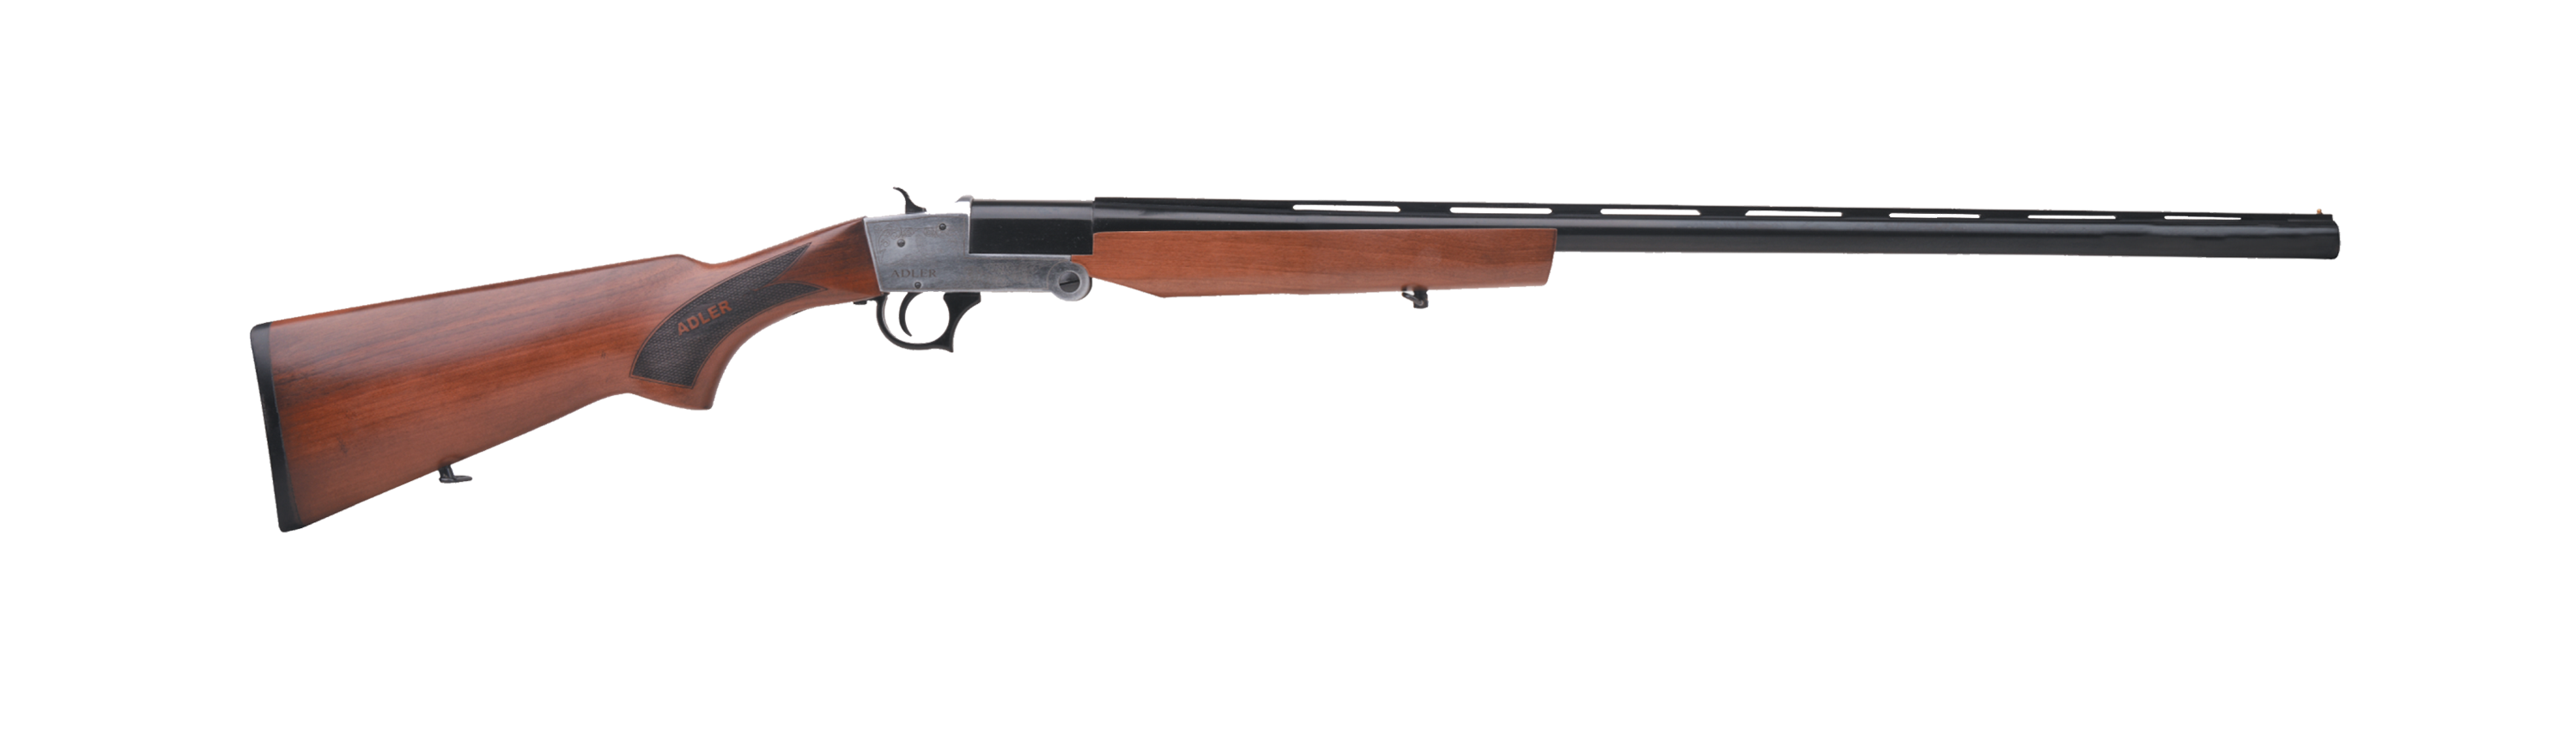 Adler MT 204 Single Barrel Shotgun